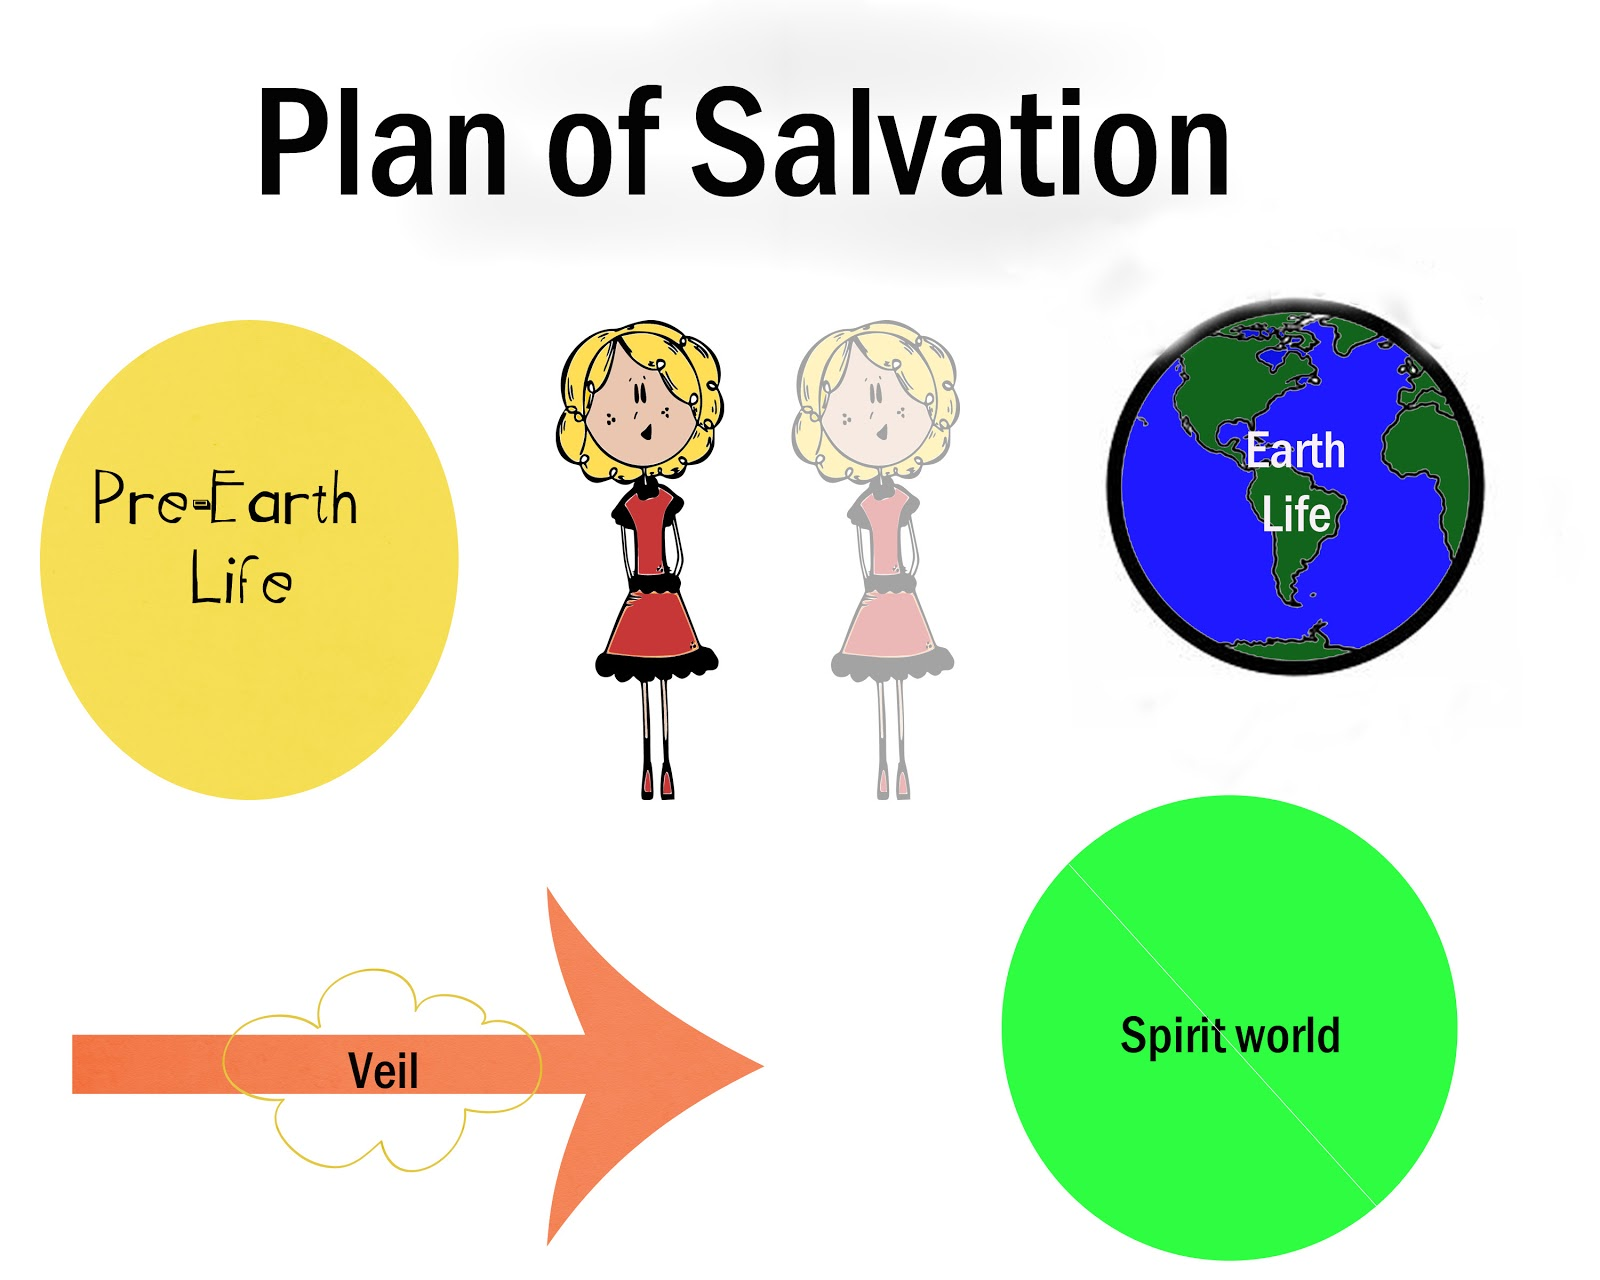 graphic relating to Plan of Salvation Printable named Krysp Pictures: Application of Salvation (no cost printable)